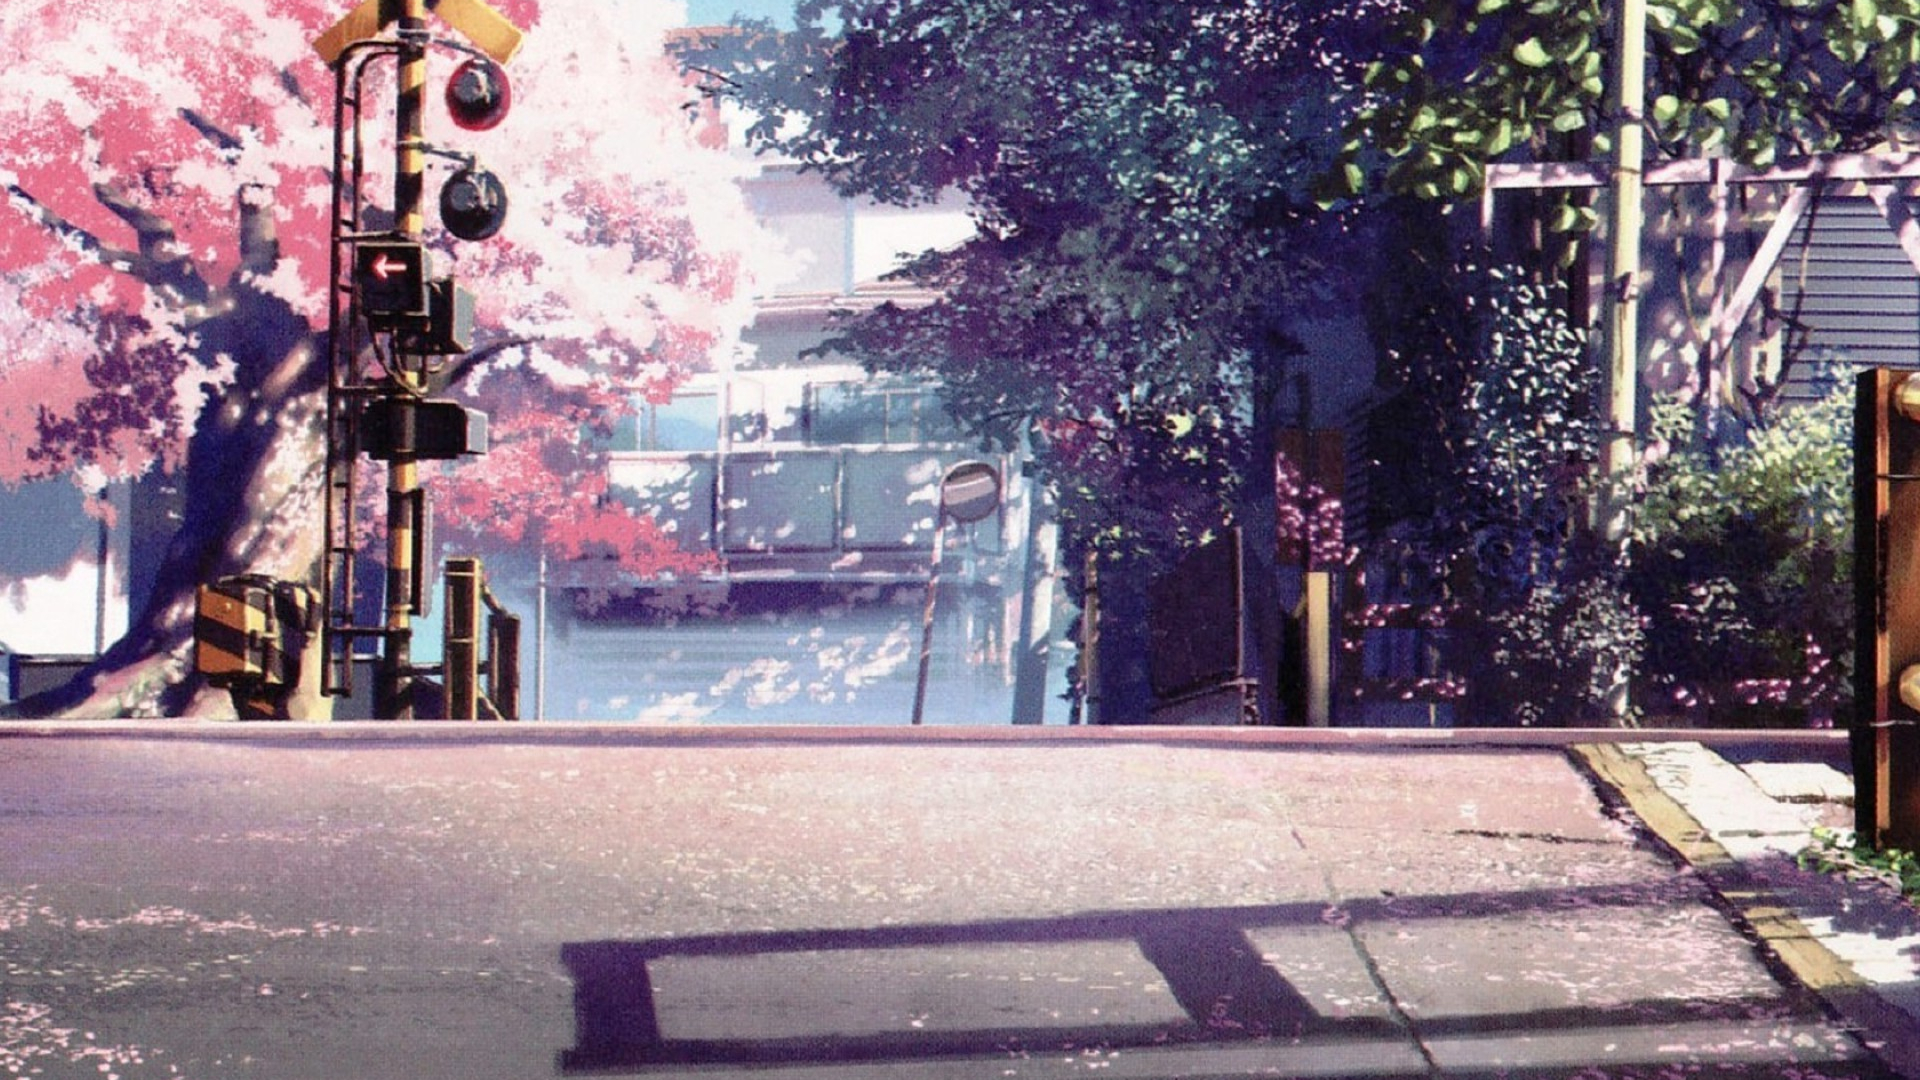 Free Download 5 Centimeters Per Second Wallpaper 79 Wallpapers Hd